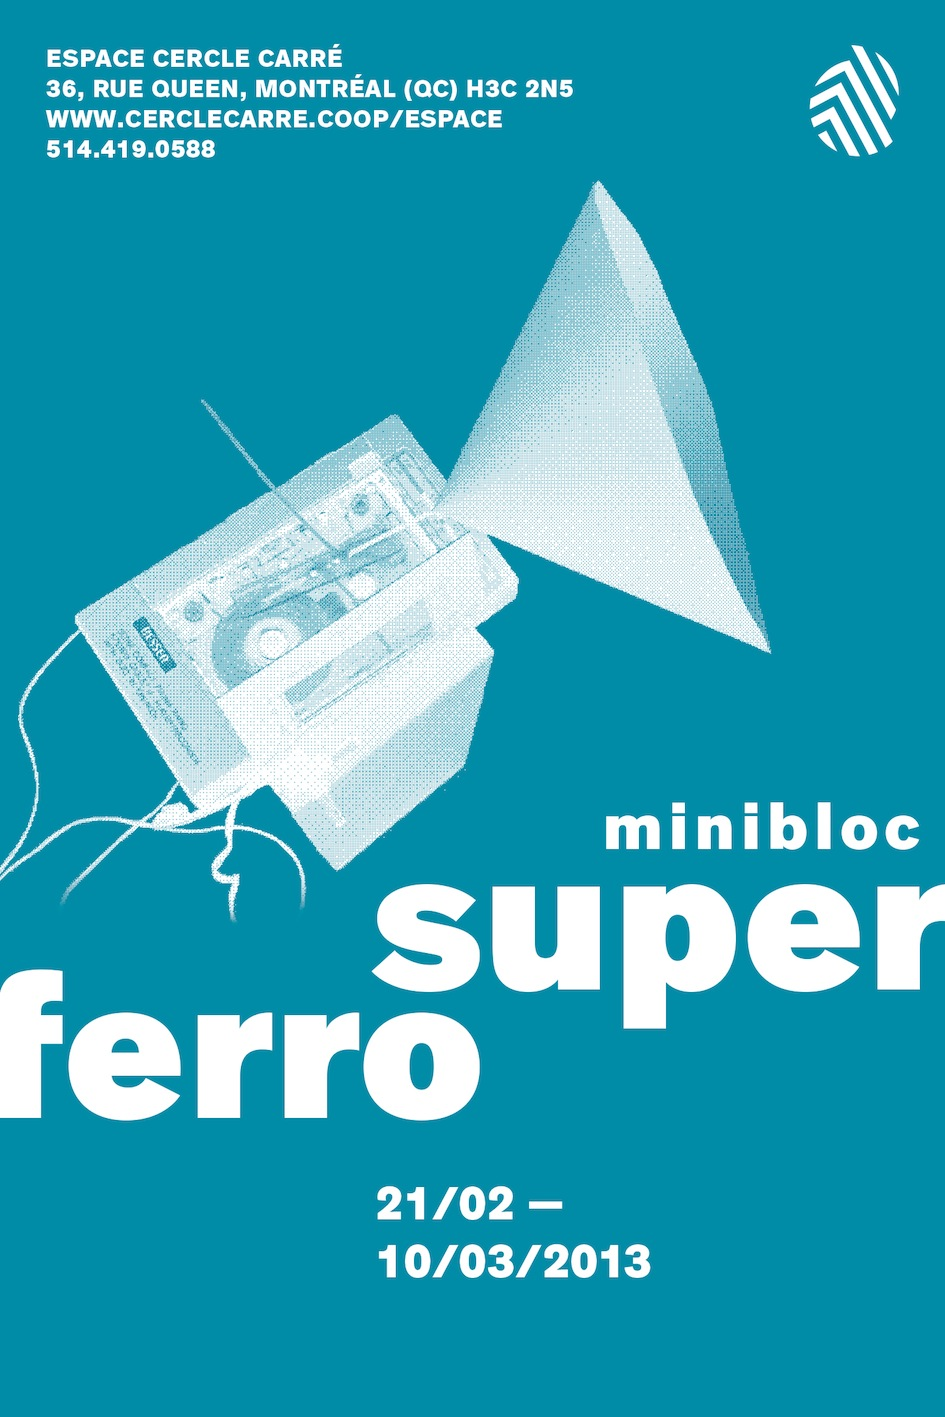 minibloc-superferro_6-1